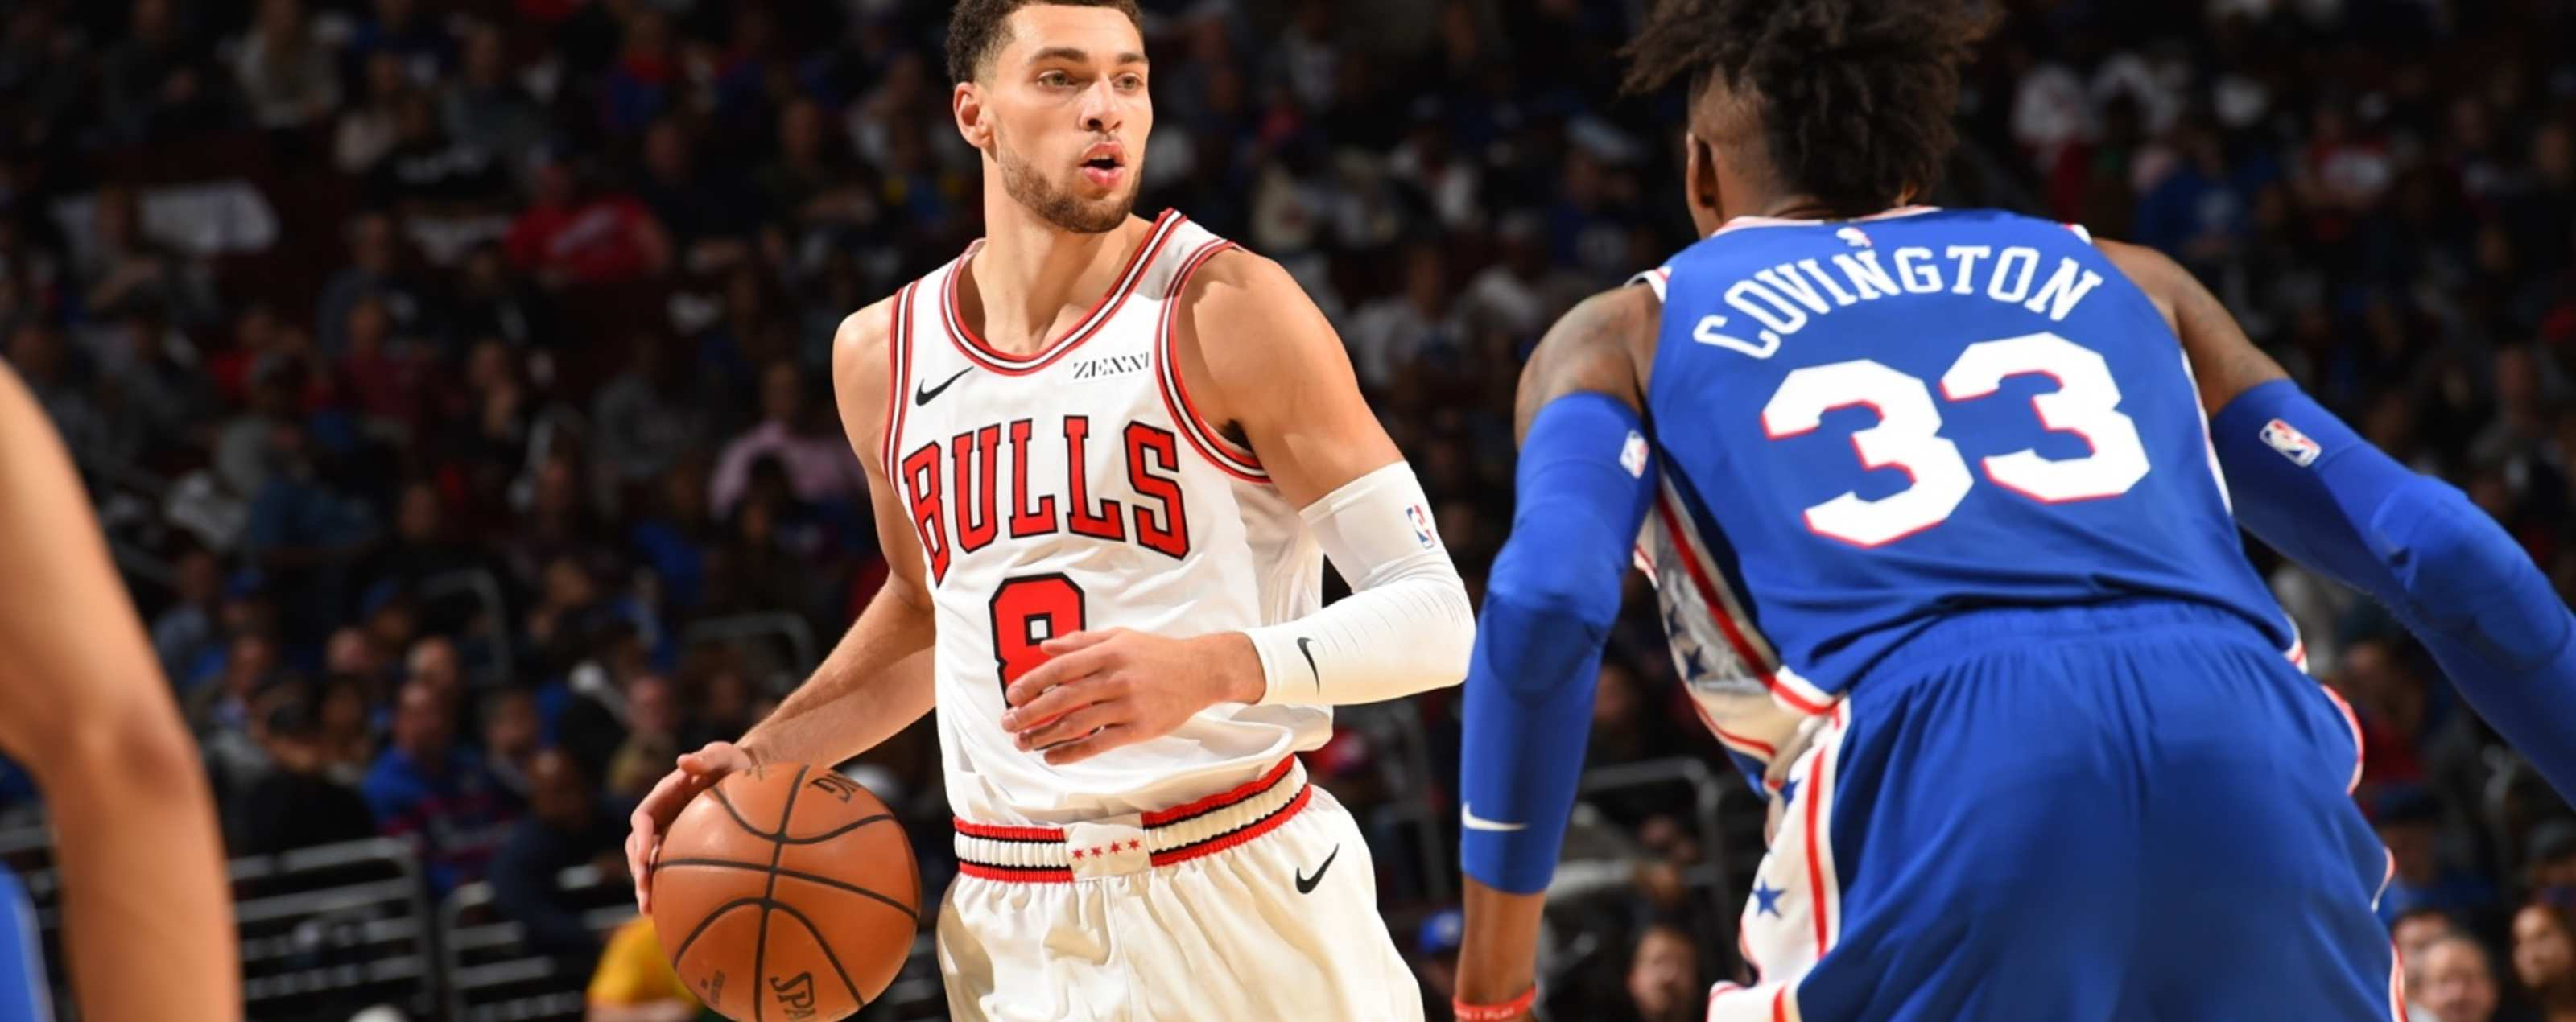 f4125bd3b Zach LaVine is rising to the occasion and playing at an All-Star level